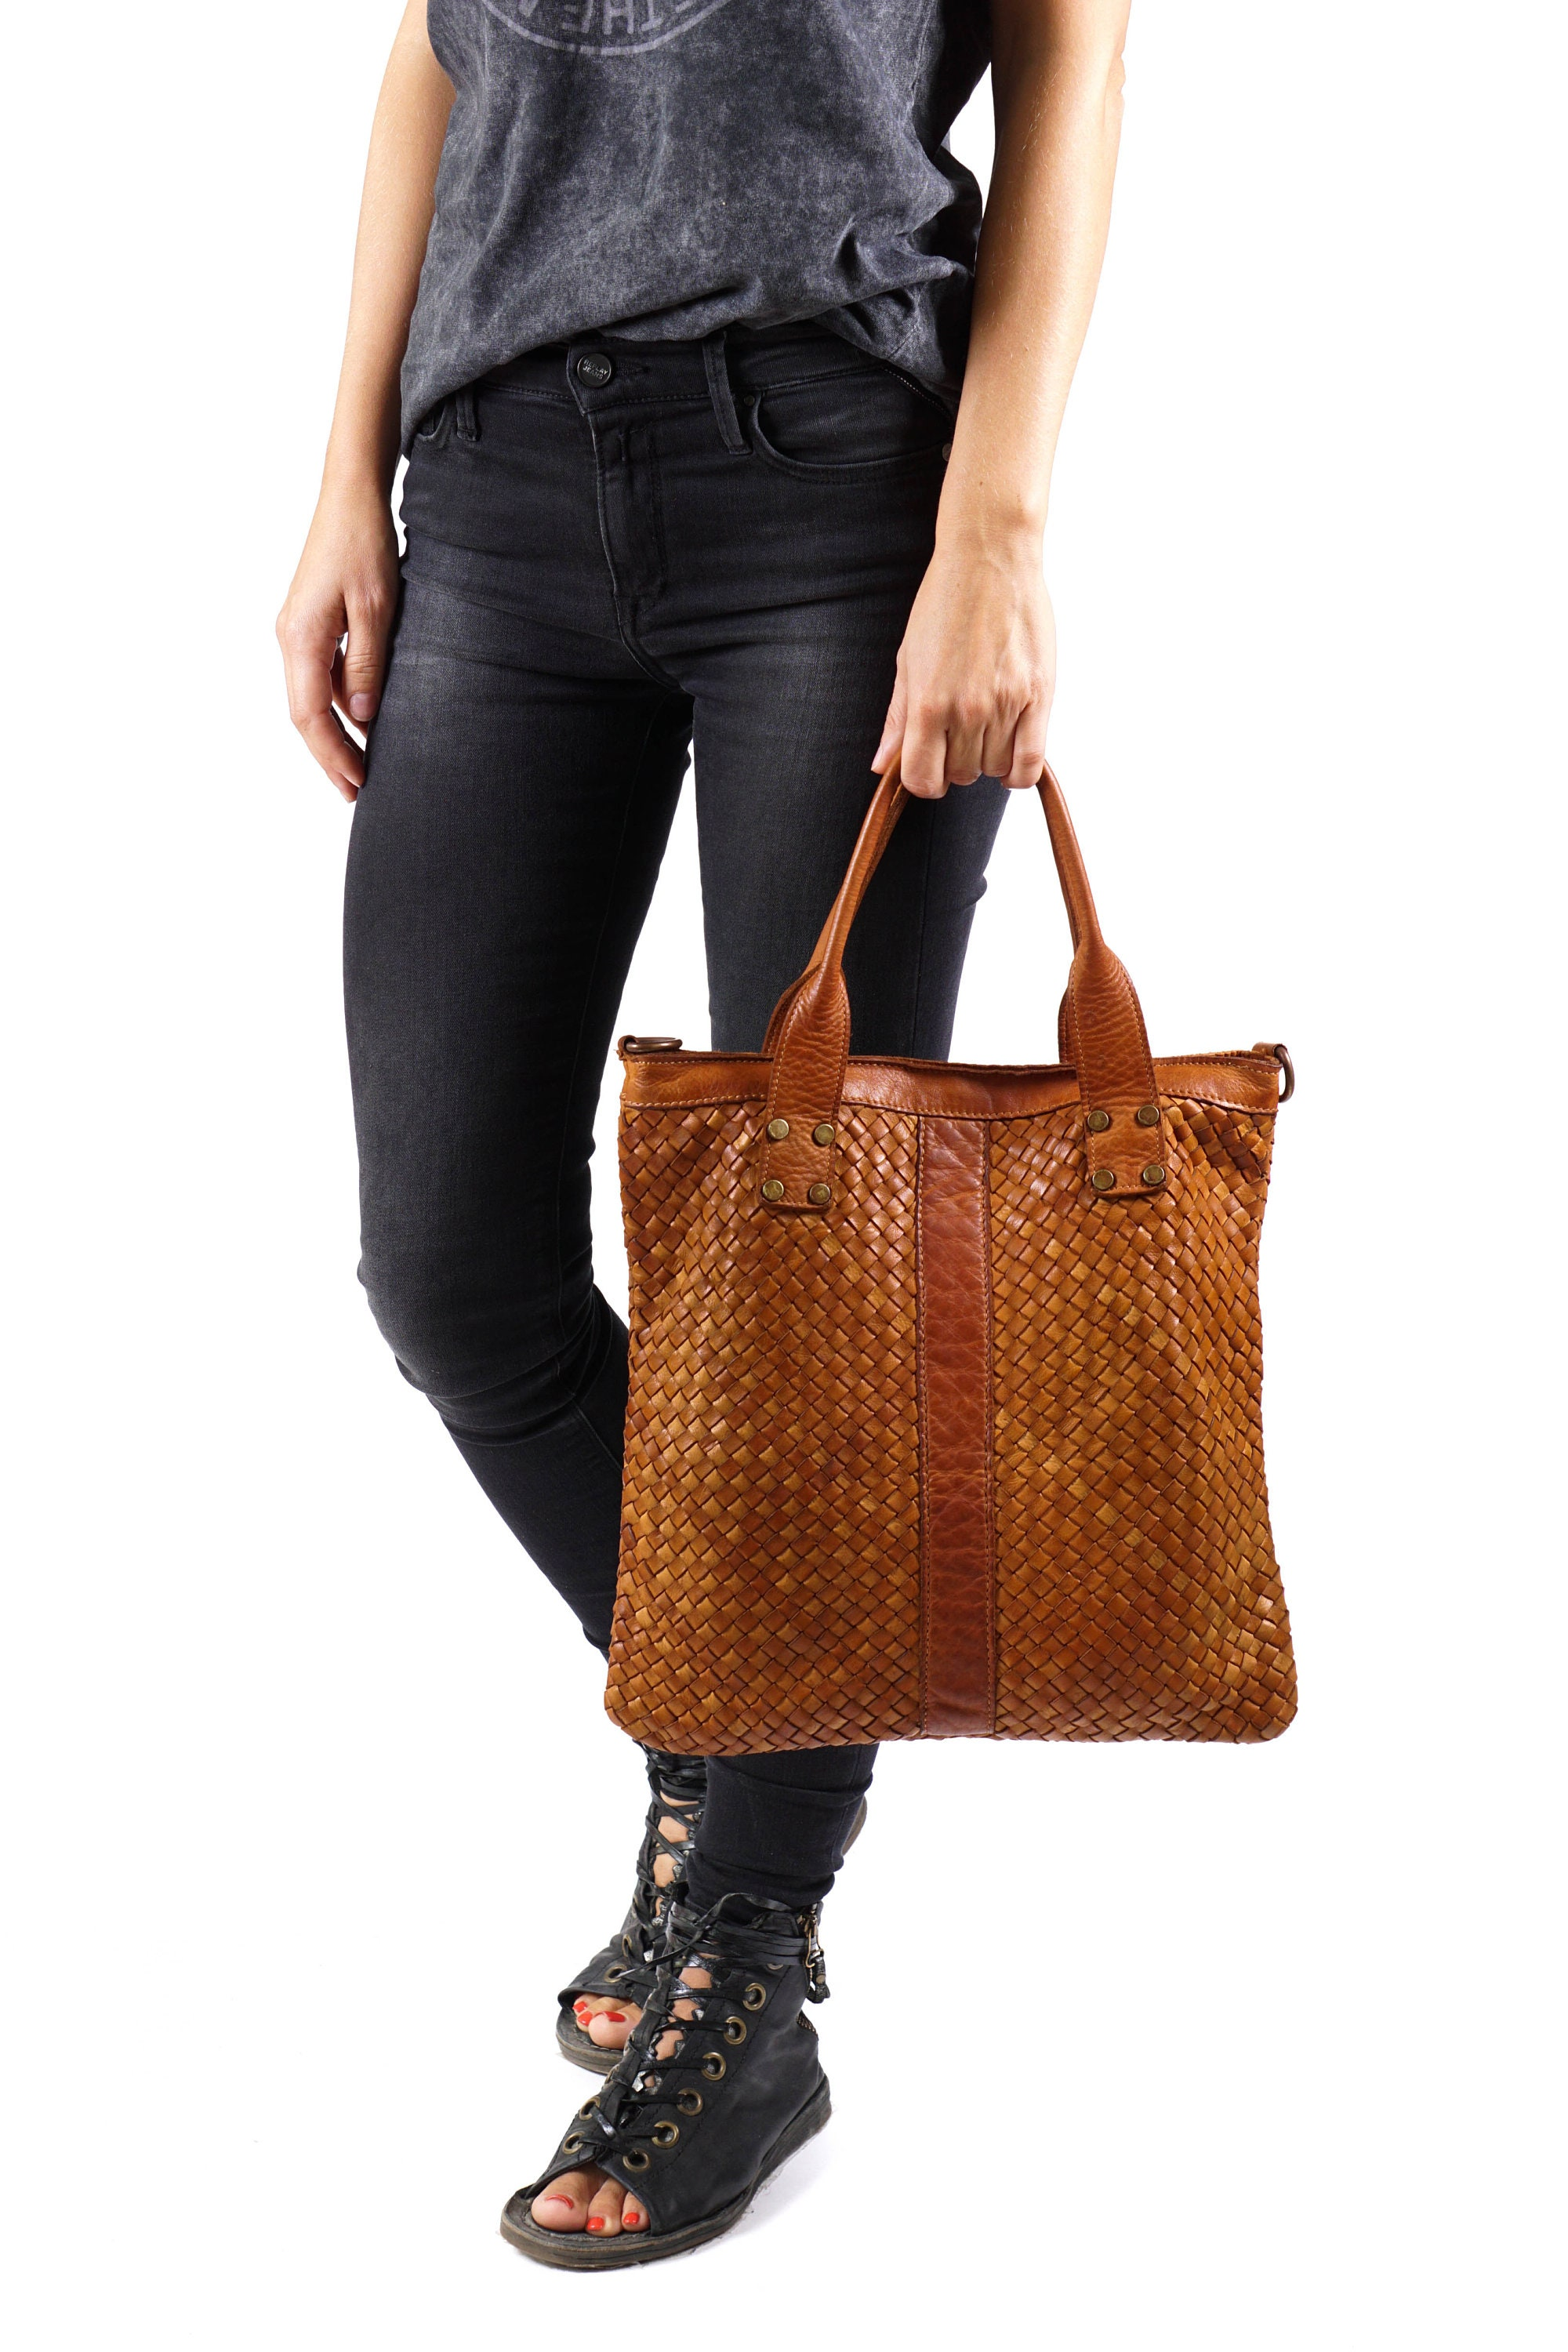 Top Handle Bags Woman Leather Tote Italian Leather Bag  b4f53388ccc01